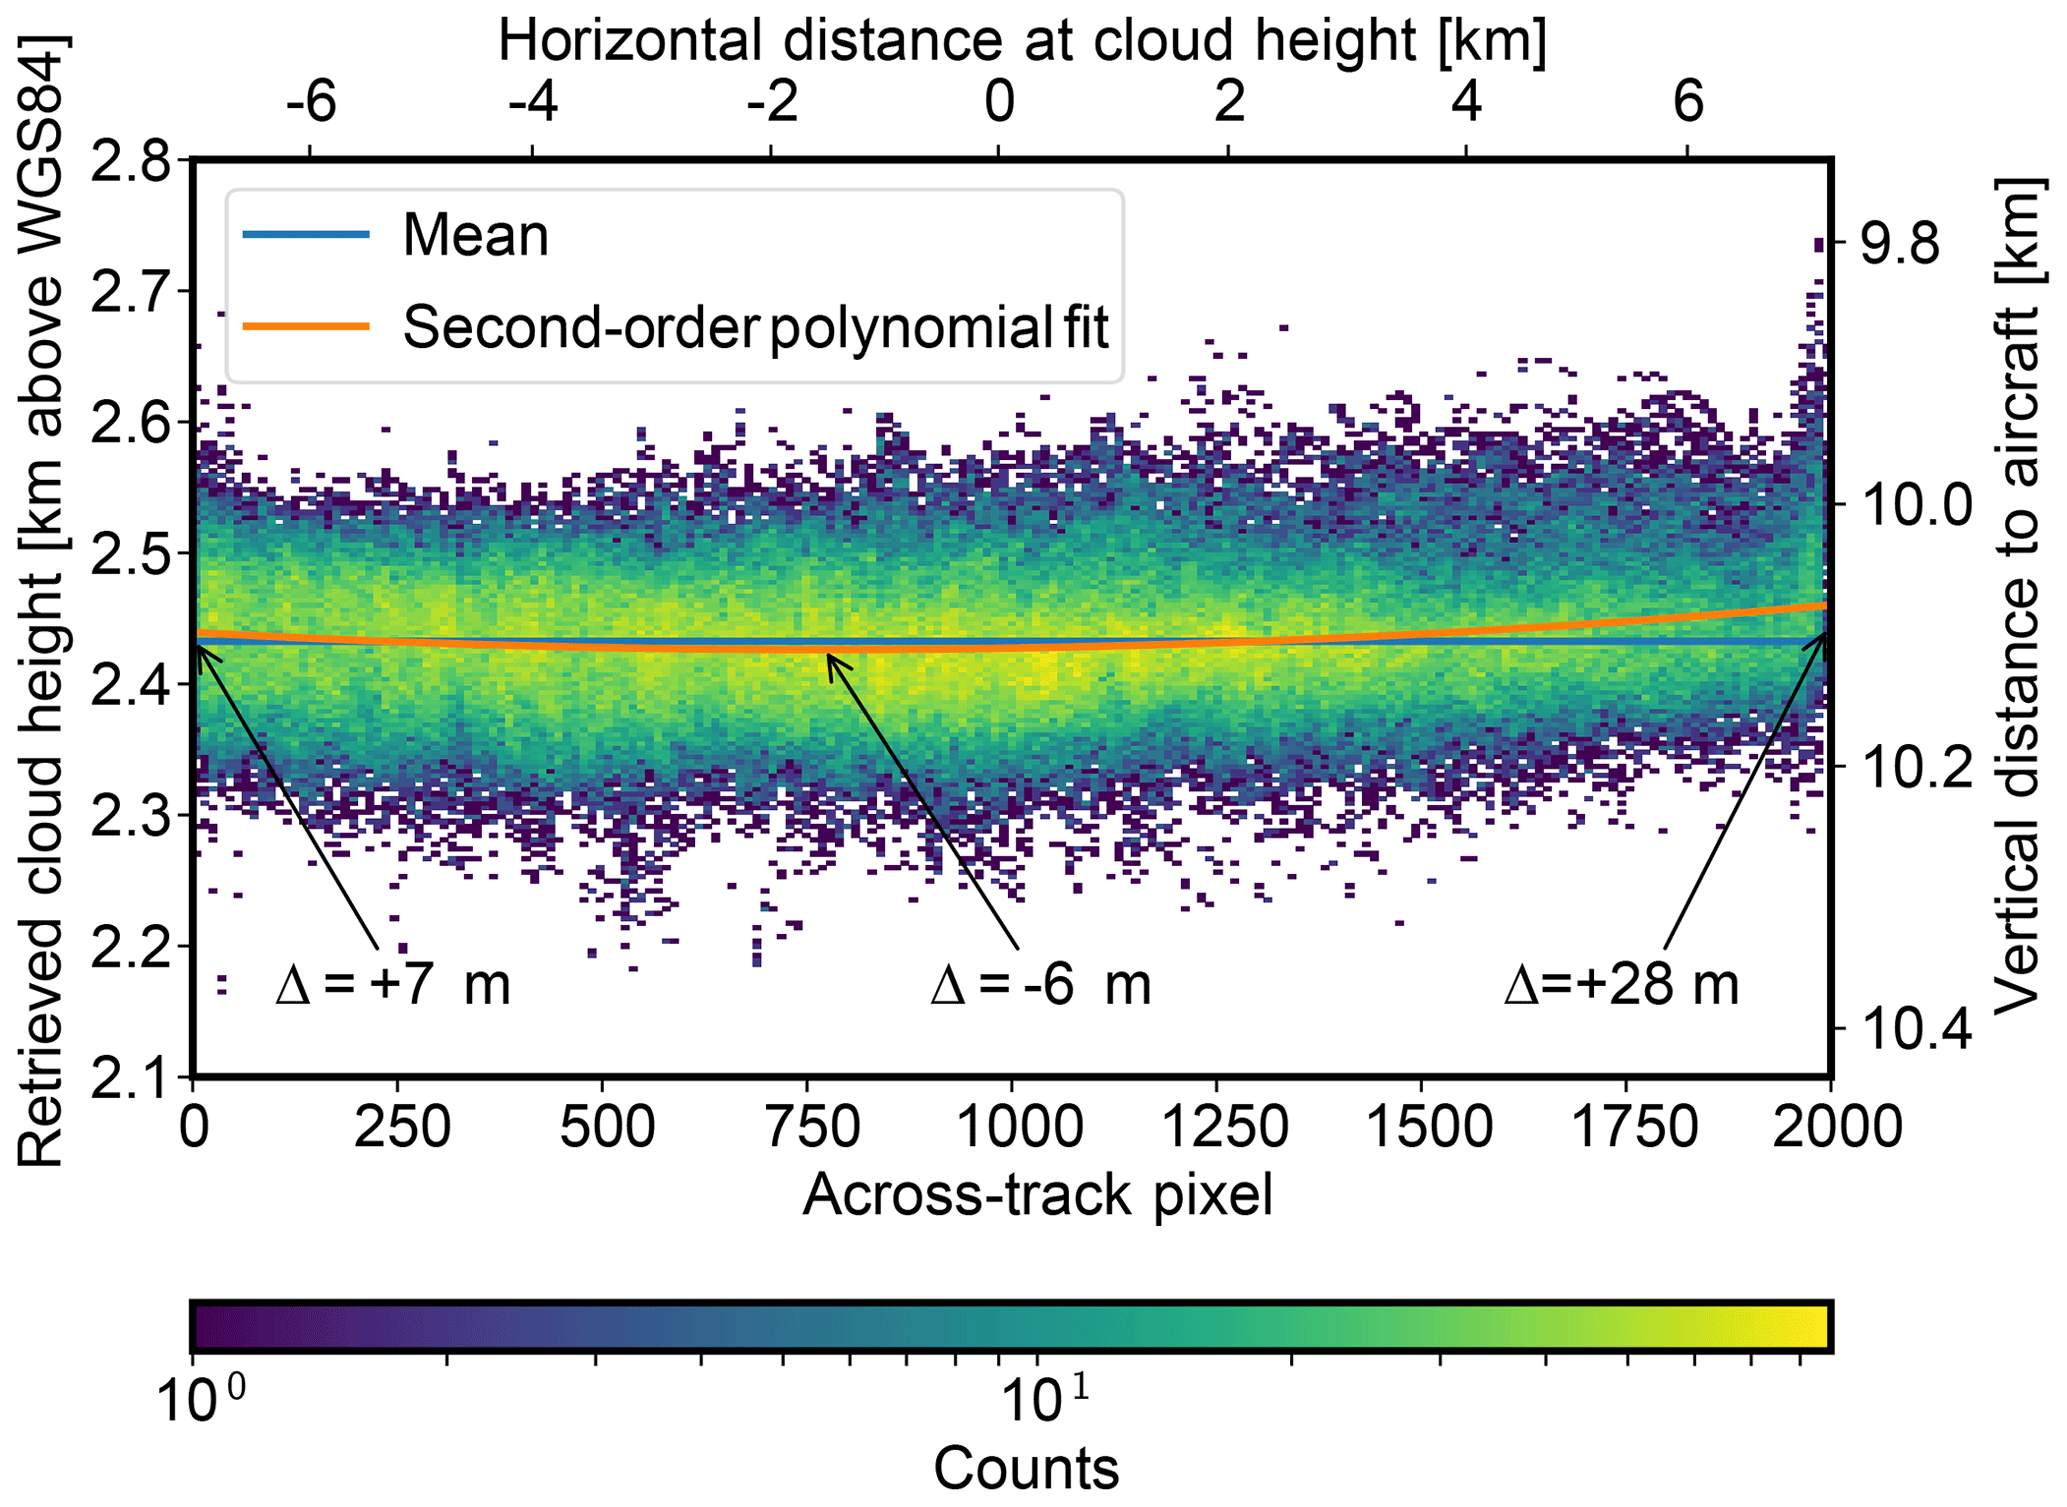 AMT - Aircraft-based stereographic reconstruction of 3-D cloud geometry